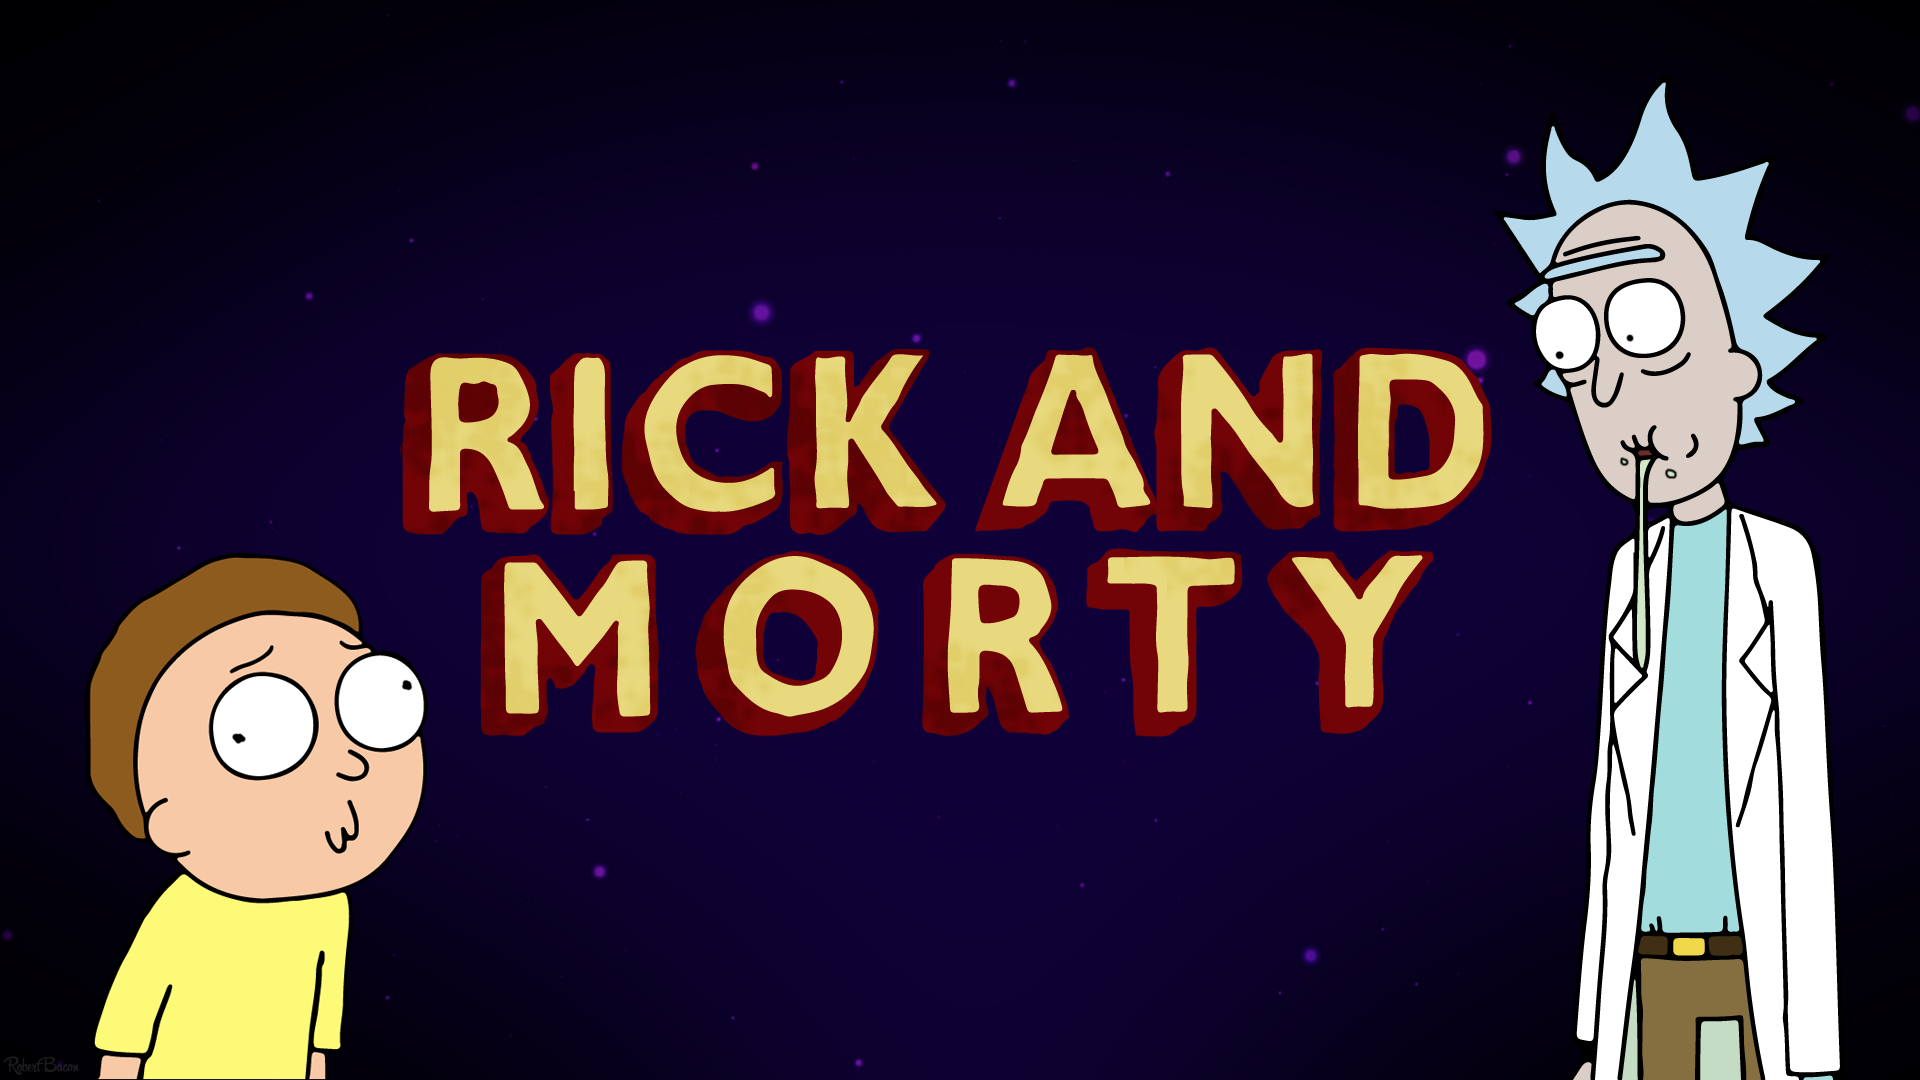 rick and morty tv show logo wallpaper 63909